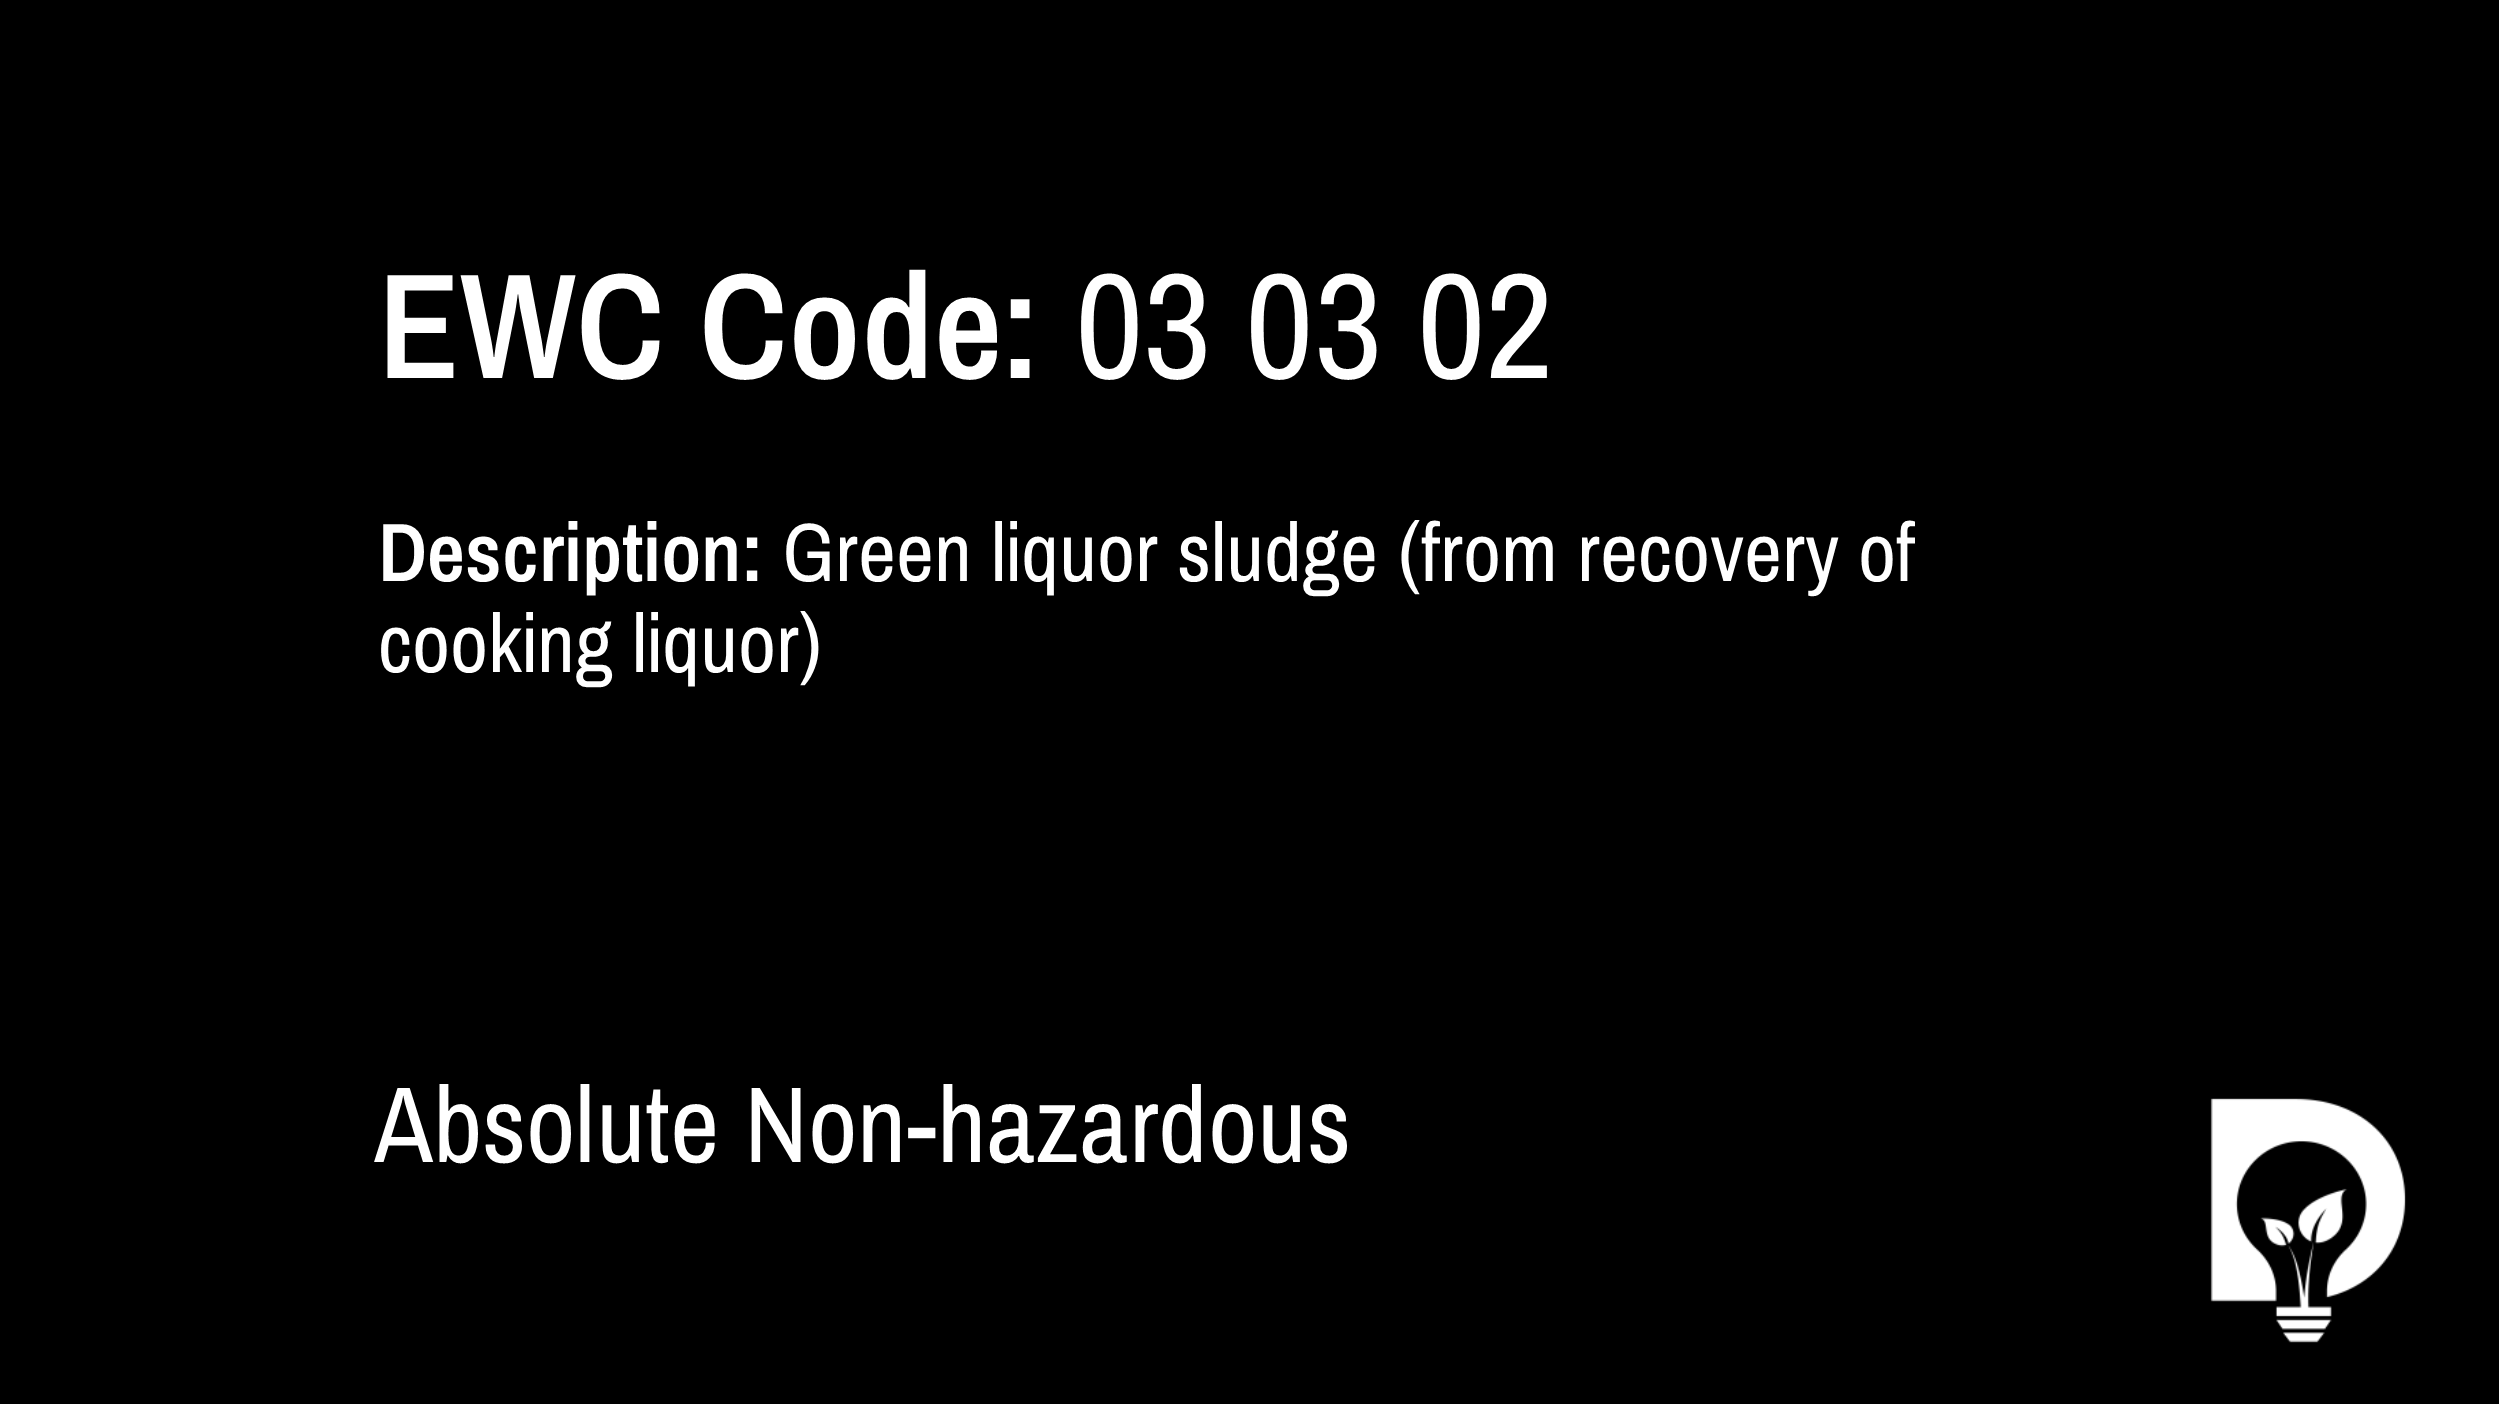 EWC Code: 03 03 02 - green liquor sludge (from recovery of cooking liquor). Type: Absolute Non-hazardous. Image by Dsposal